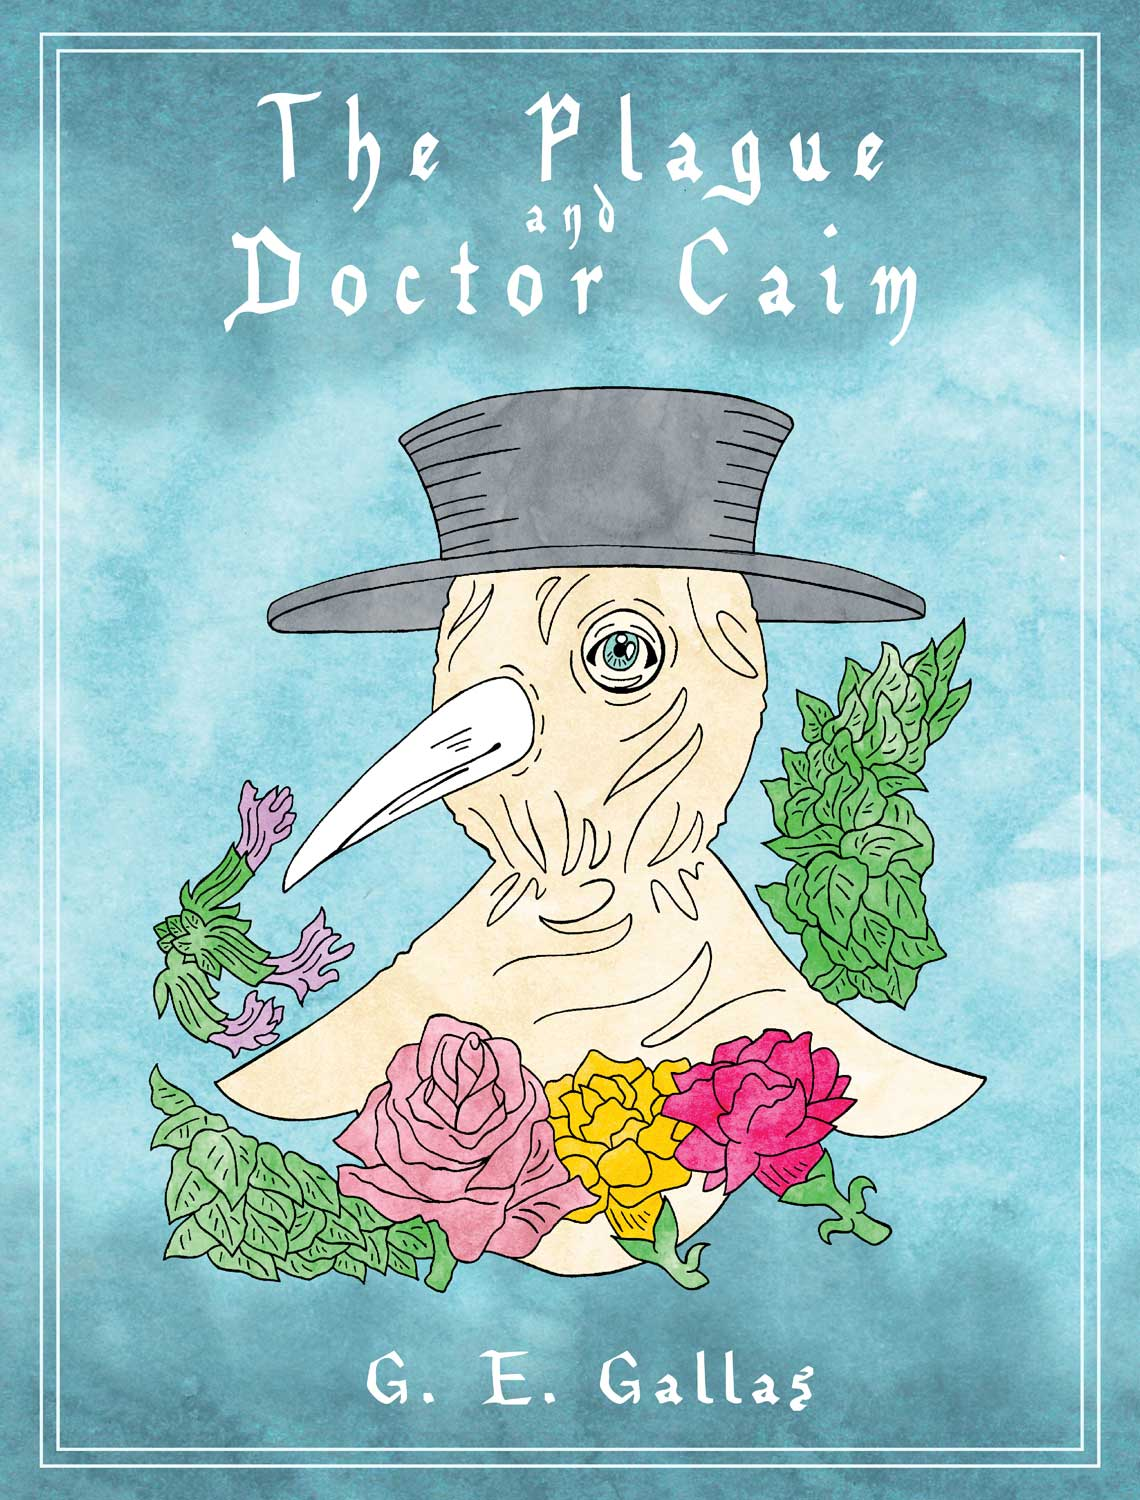 Cover image for fantasy graphic novel The Plague and Doctor Caim